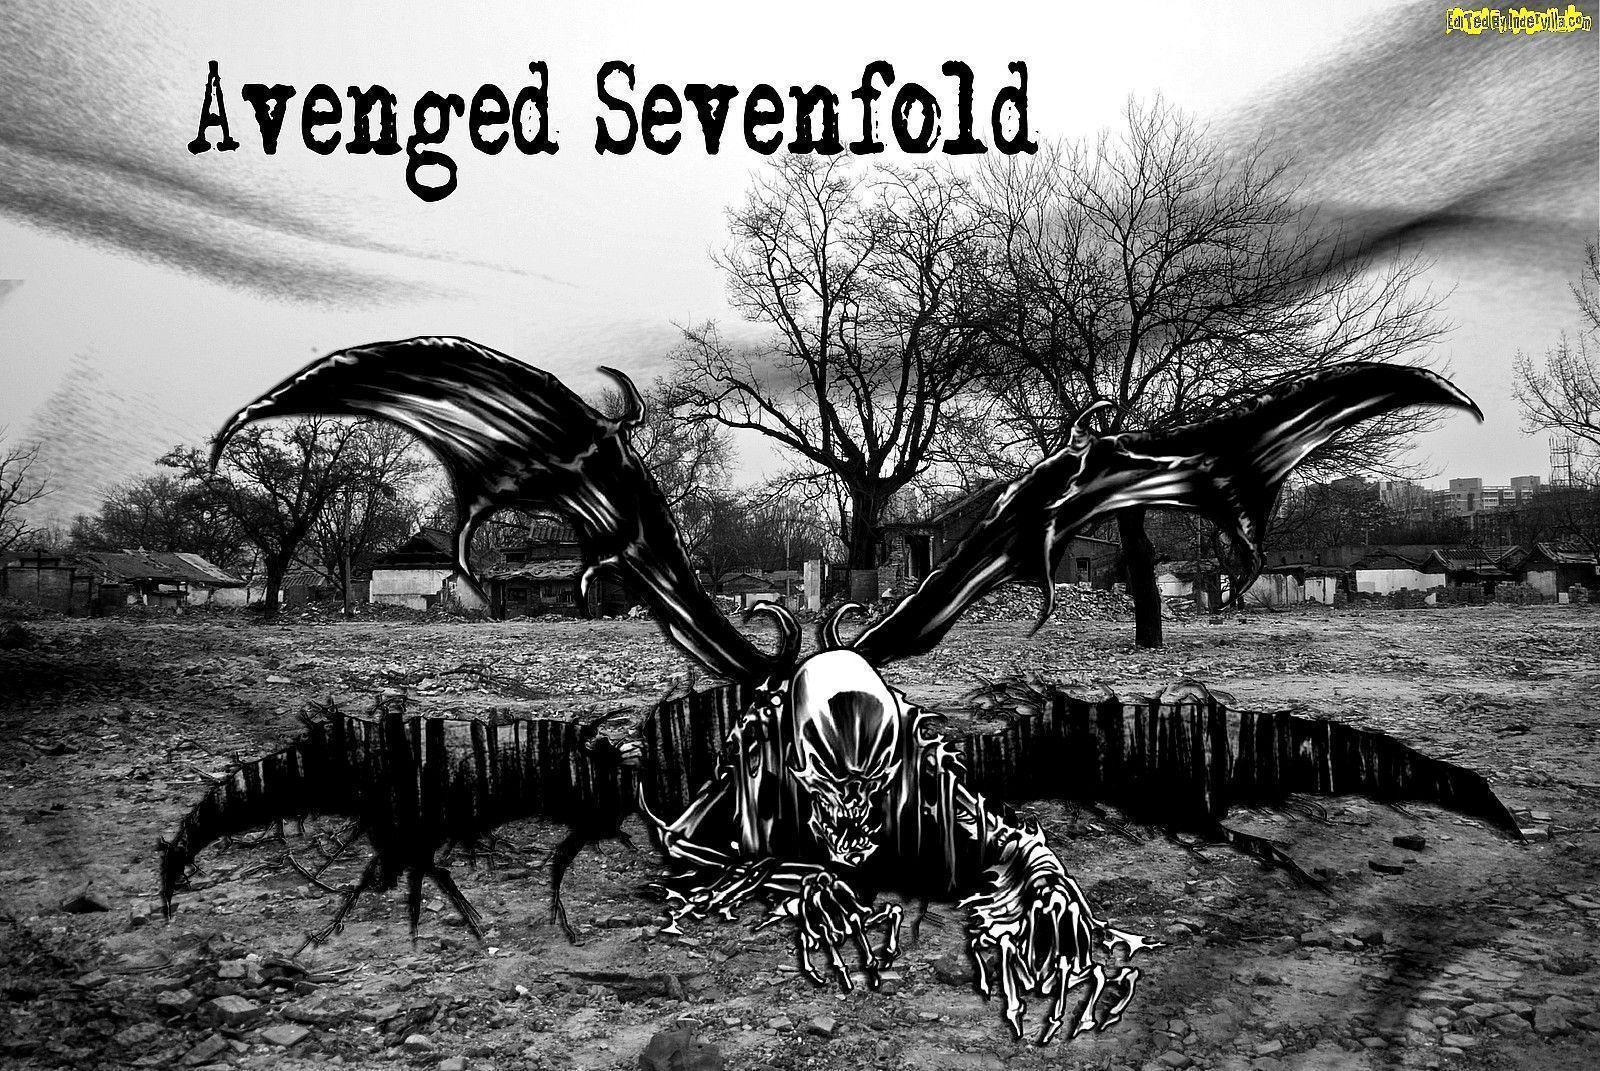 Avenged sevenfold hd wallpapers wallpaper cave avenged sevenfold hd wallpaper 2376 wallpapers hd colourinwallpaper voltagebd Images